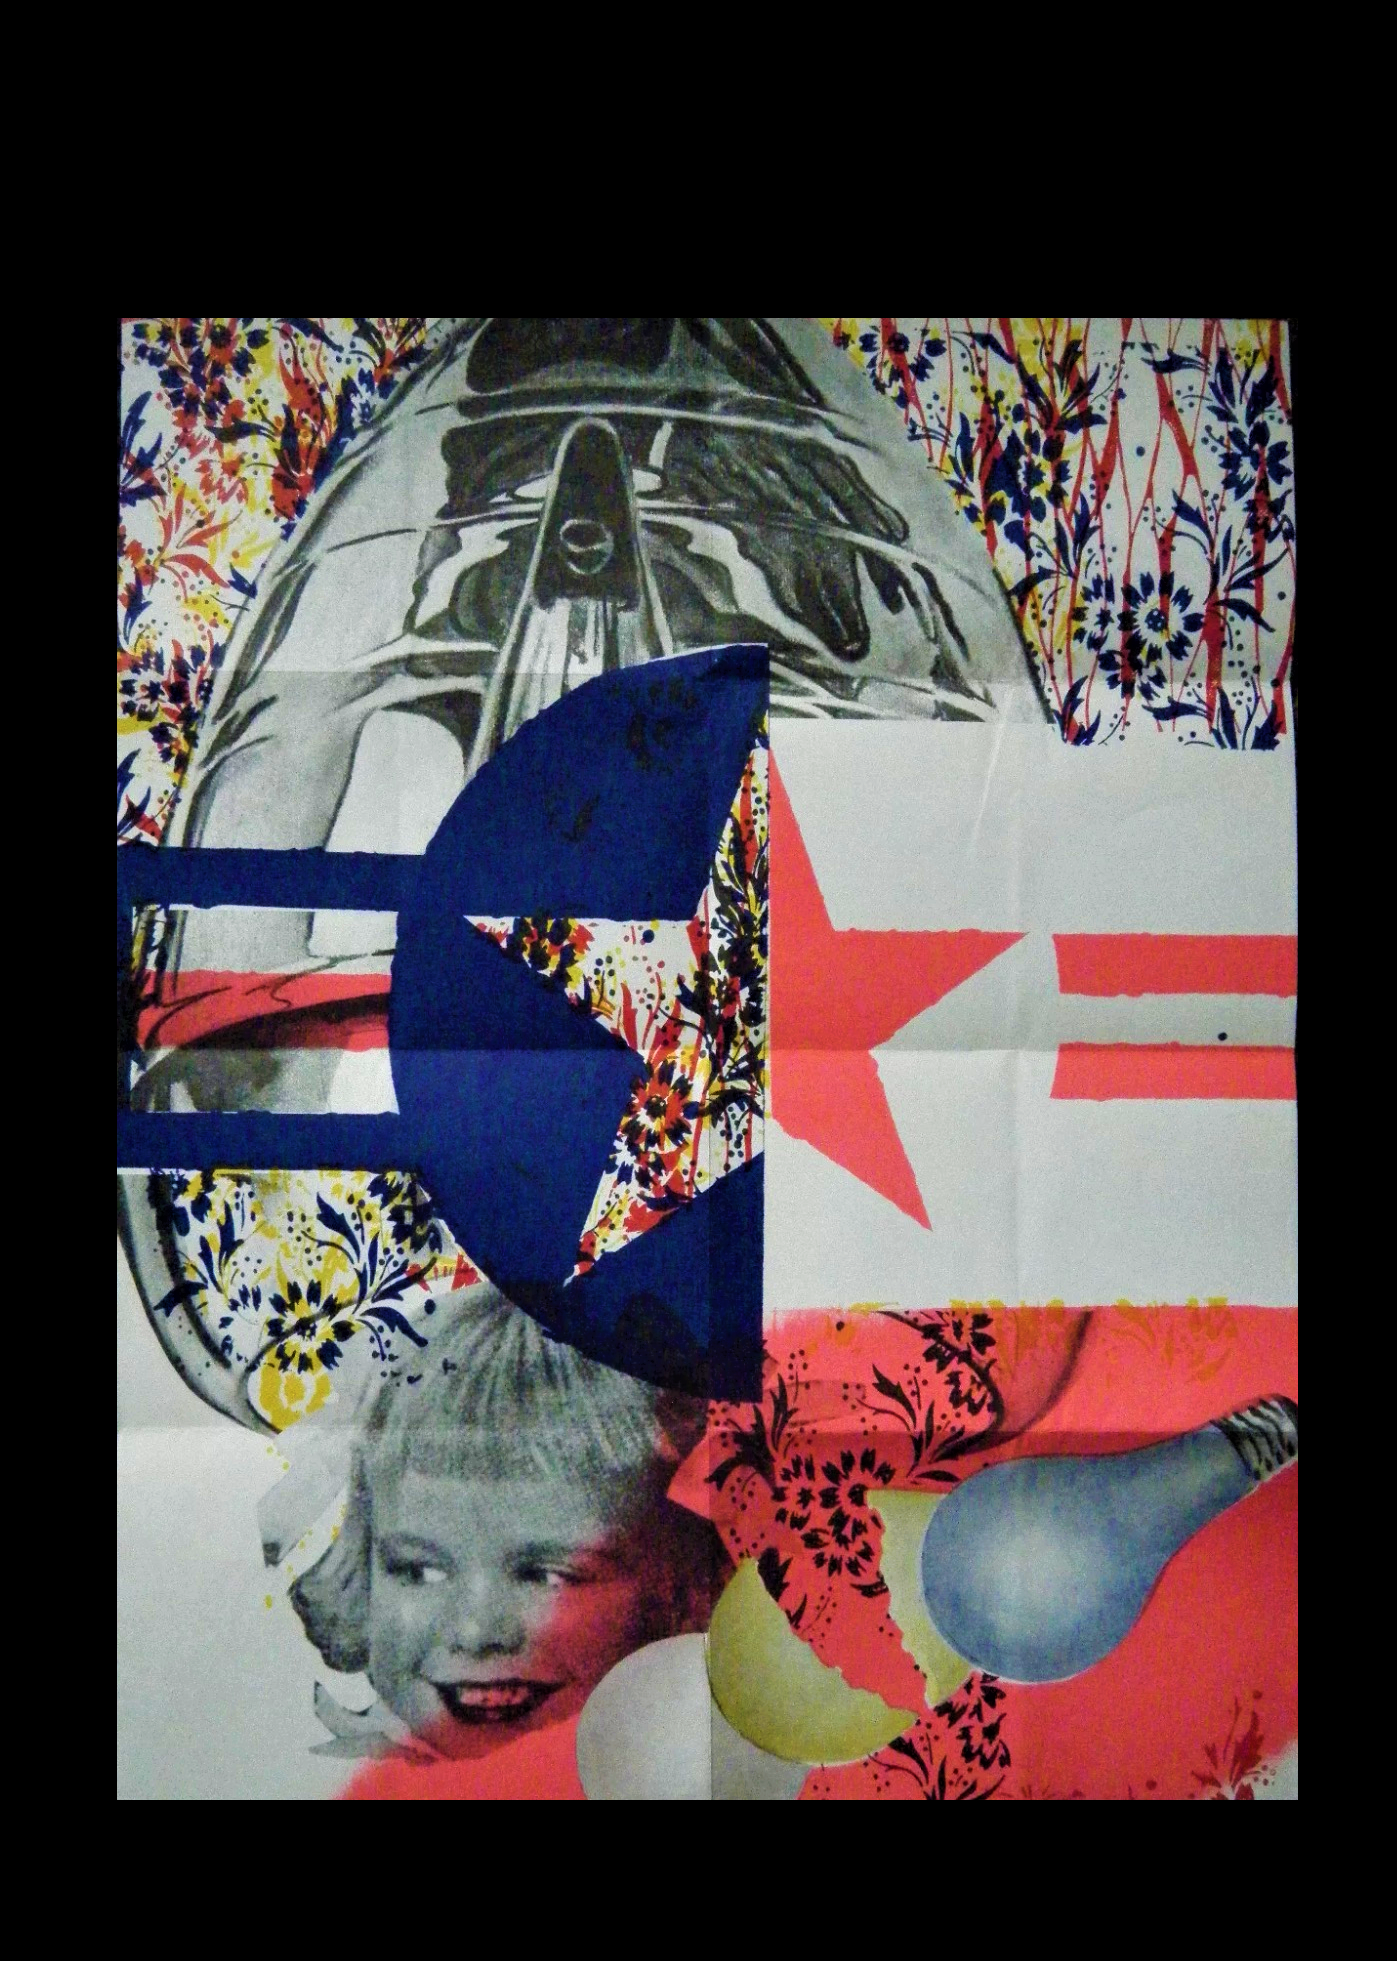 """'F-111',  1965, mailer/poster /invitation, created to announce a show of Rosenquist's """"F-111"""" painting at Leo Castelli Gallery in 1965."""